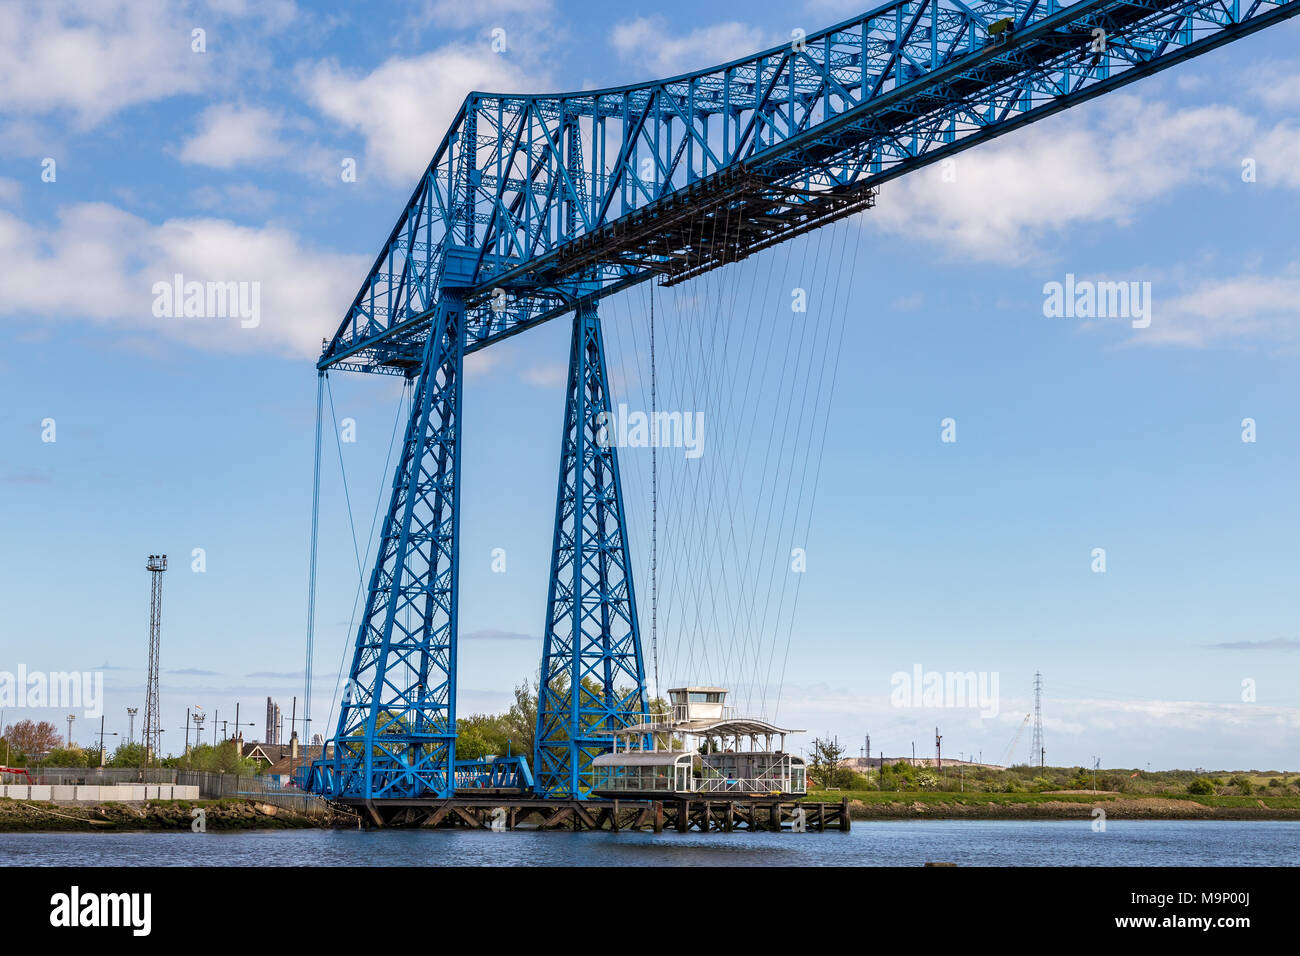 Middlesbrough, England, UK - May 14, 2016: View towards the transporter bridge with a gondola passing the River Tees - Stock Image